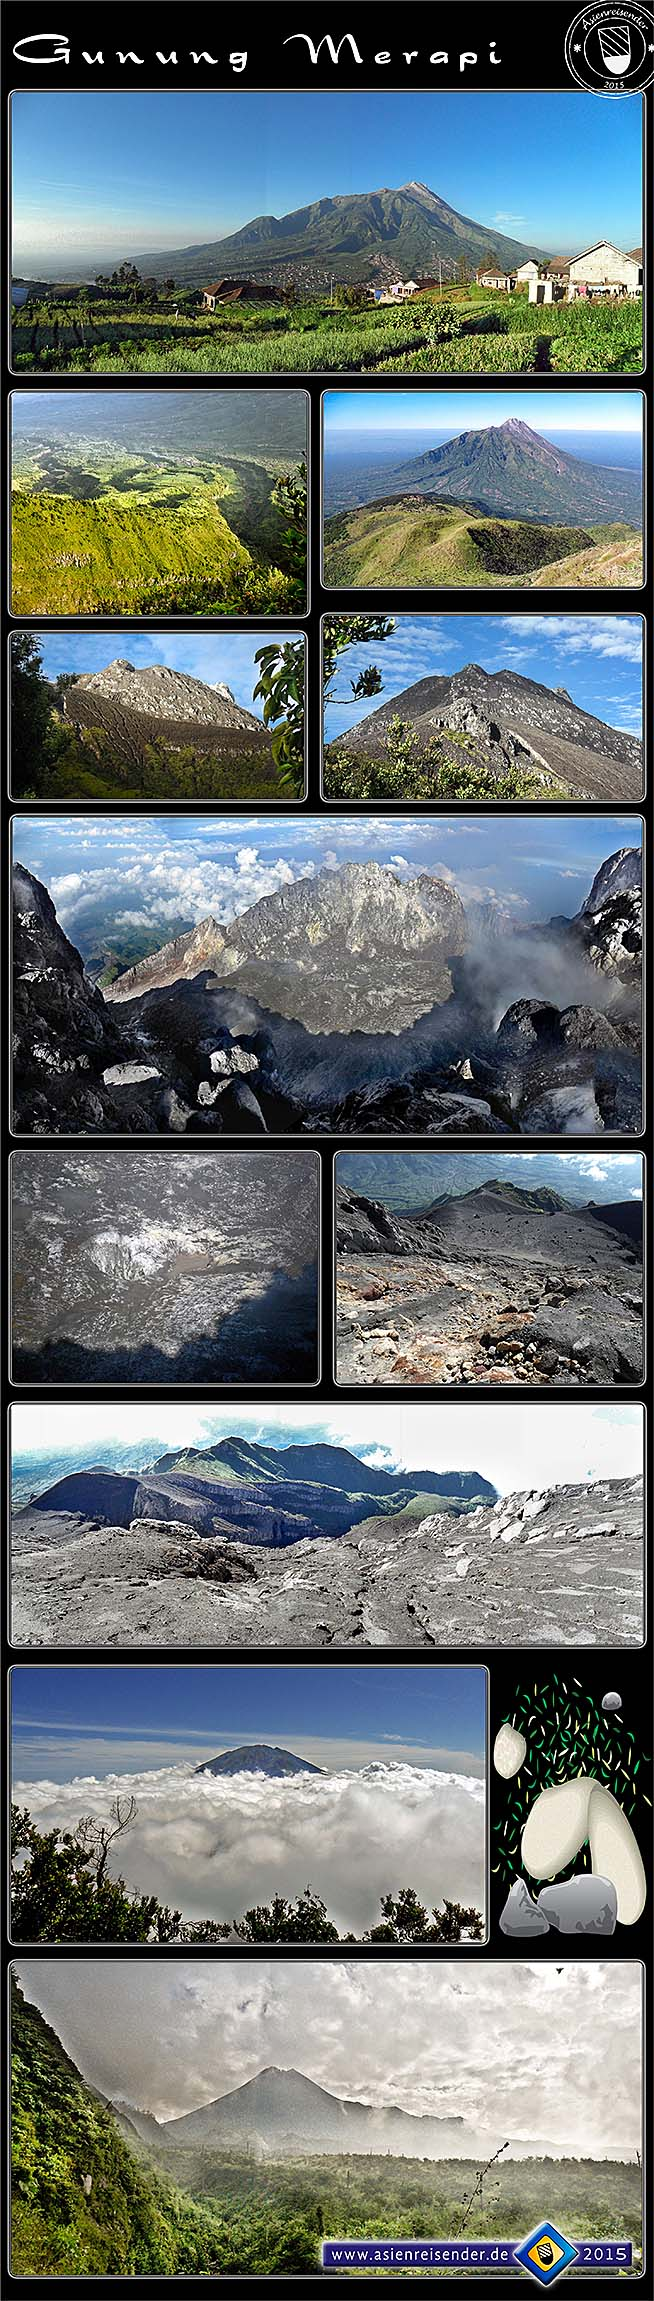 'Impressions from Gunung / Mount Merapi in a Photocomposition' by Asienreisender